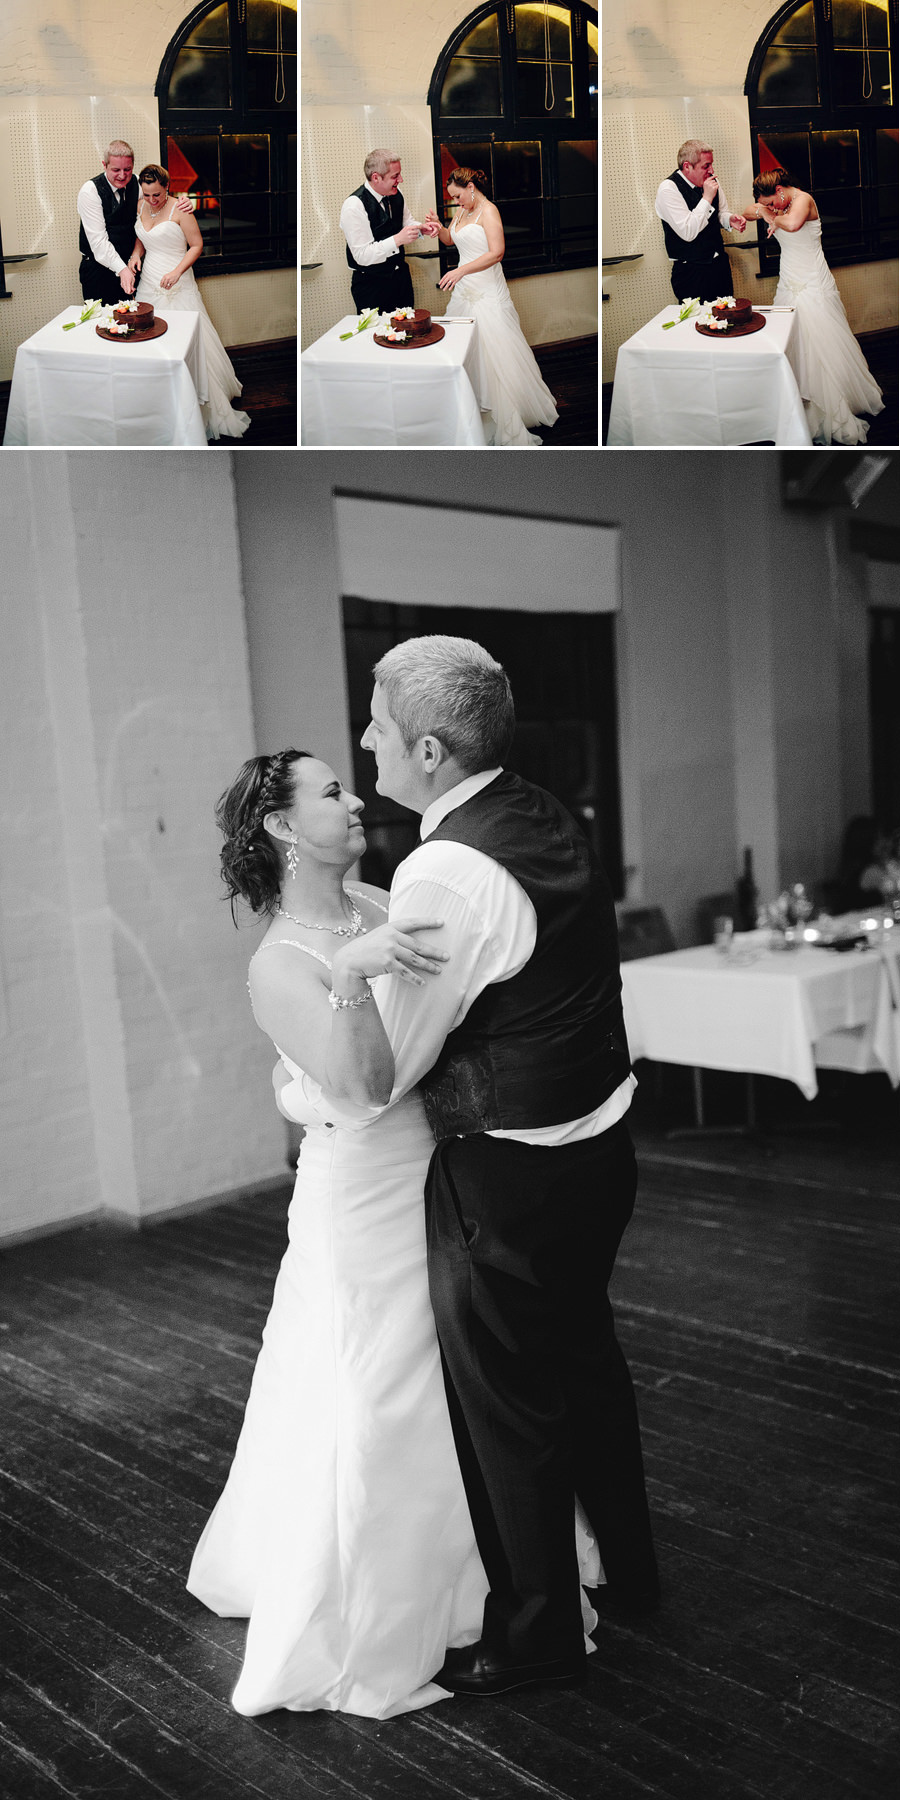 Fun Wedding Photographer: Bridal waltz